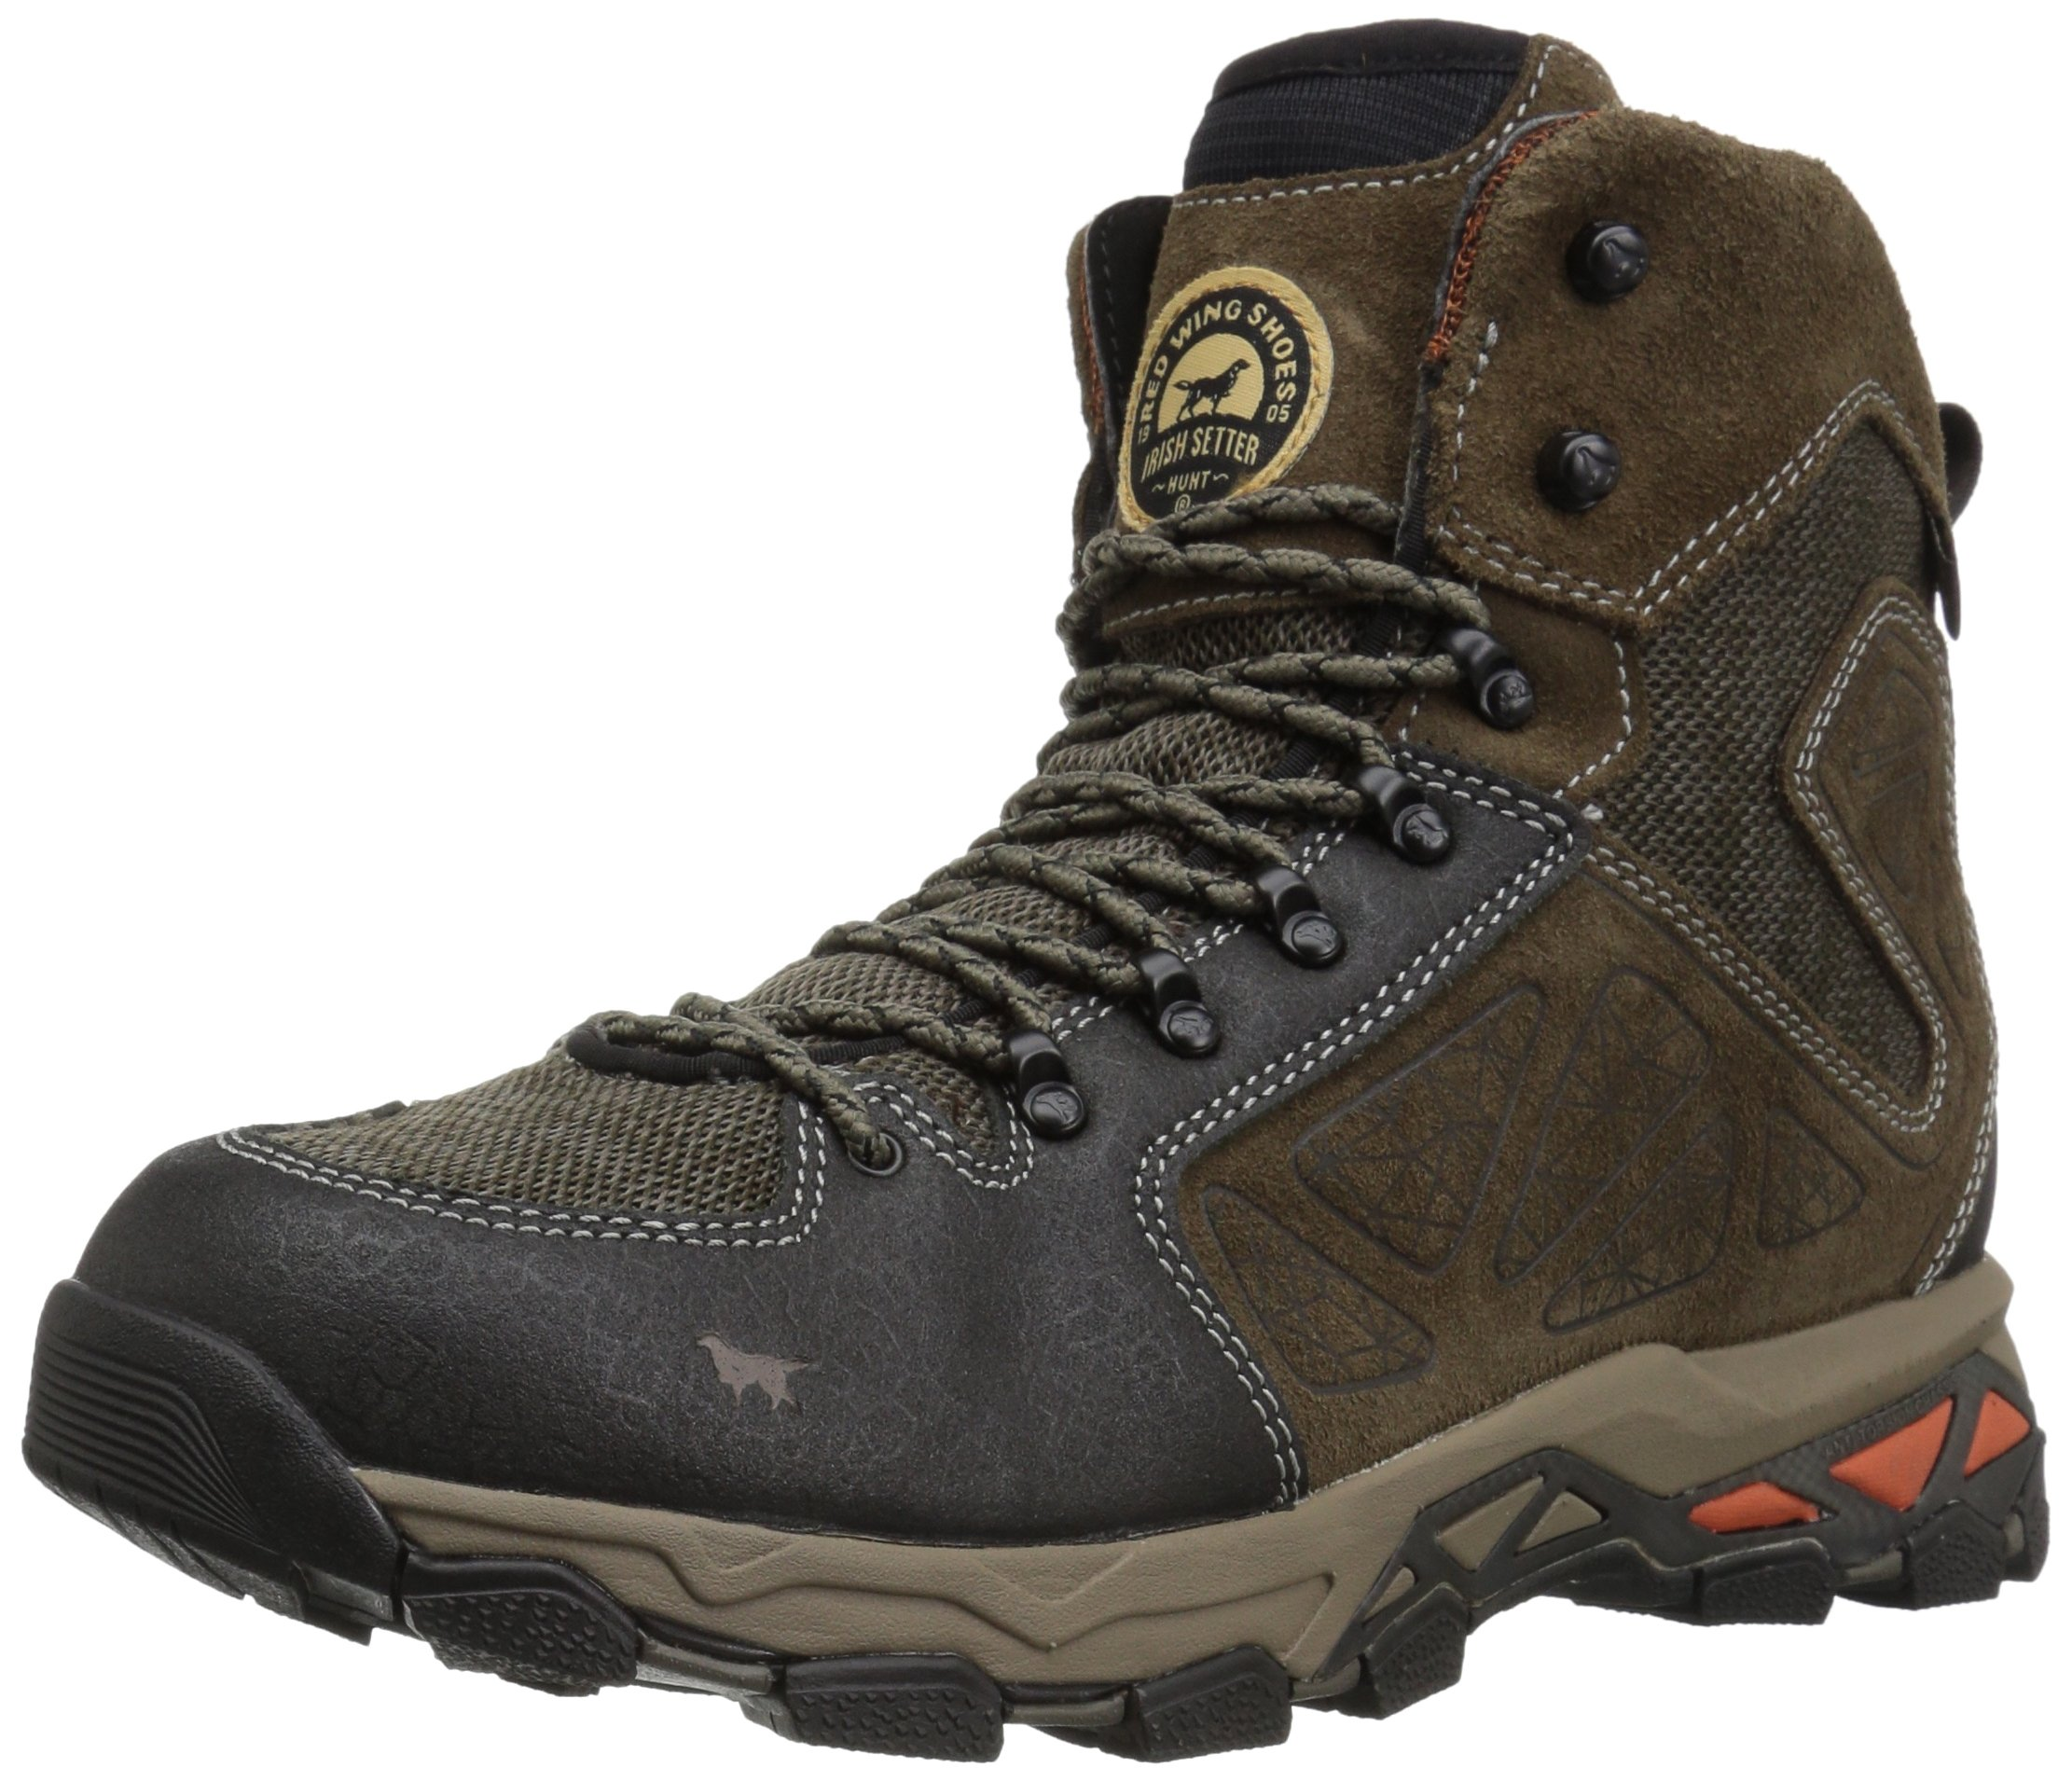 Irish Setter Men's Ravine-2880 Hunting Shoes, Gray/Black, 8 2E US